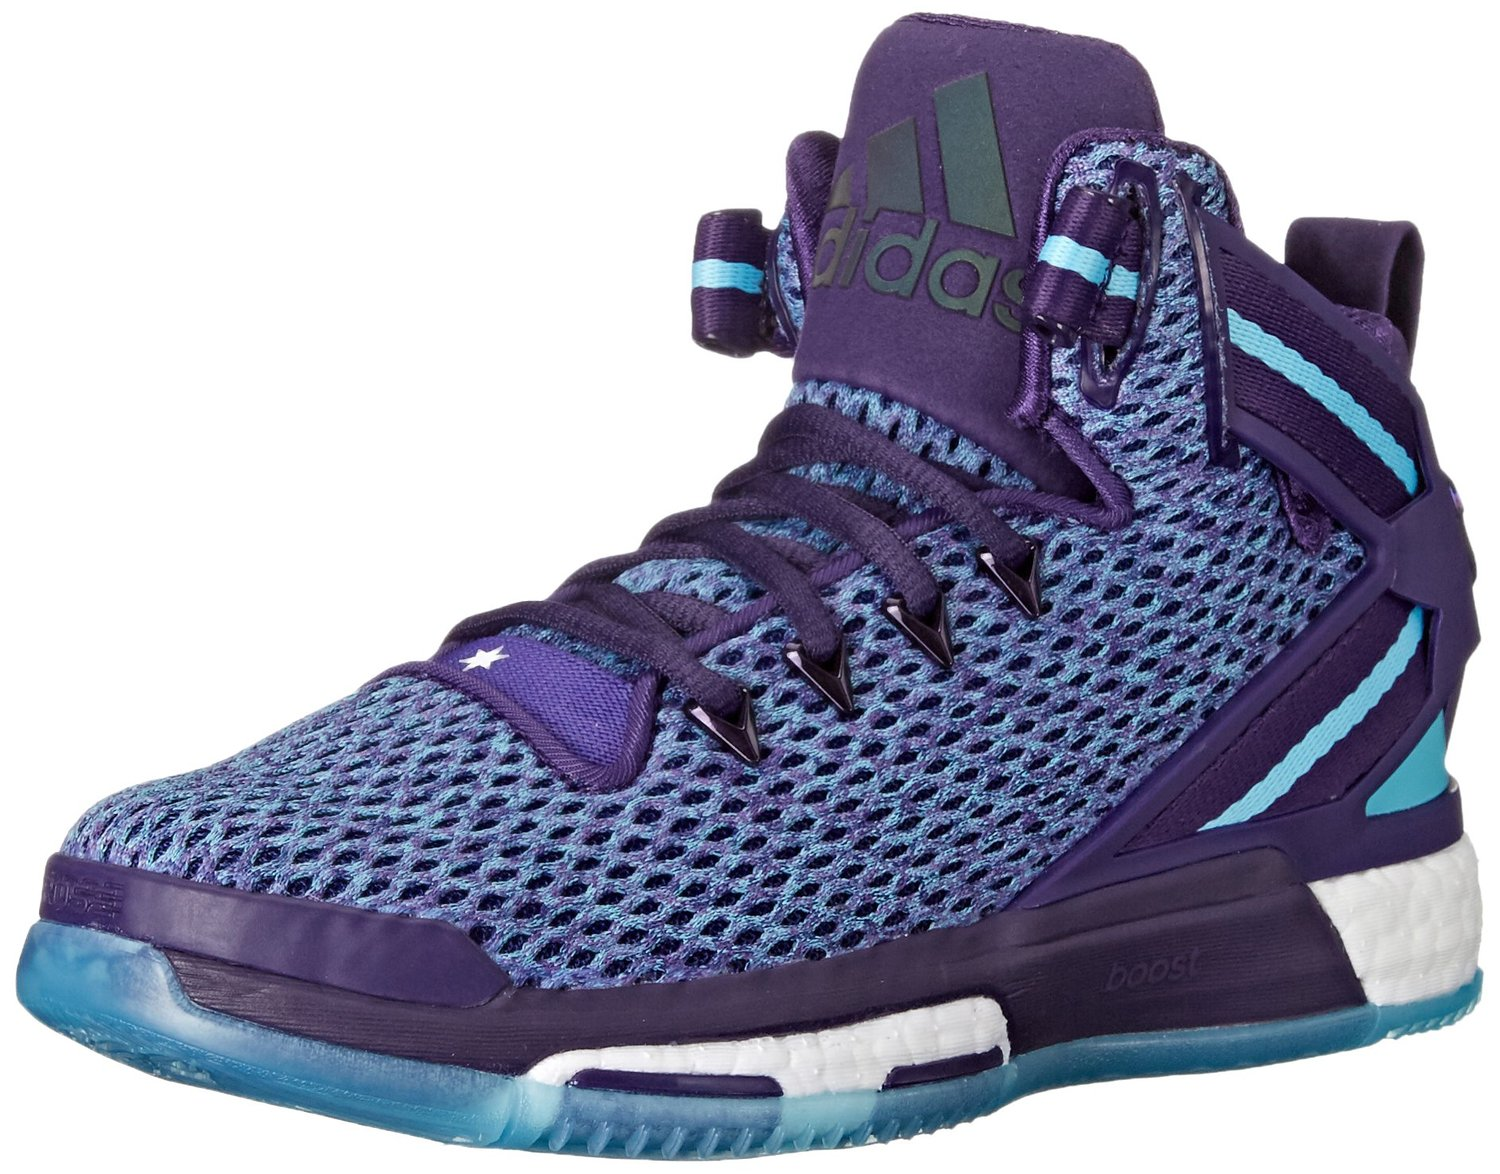 Basketball Shoes for Girls: Top 10 Best Girls' Basketball ...